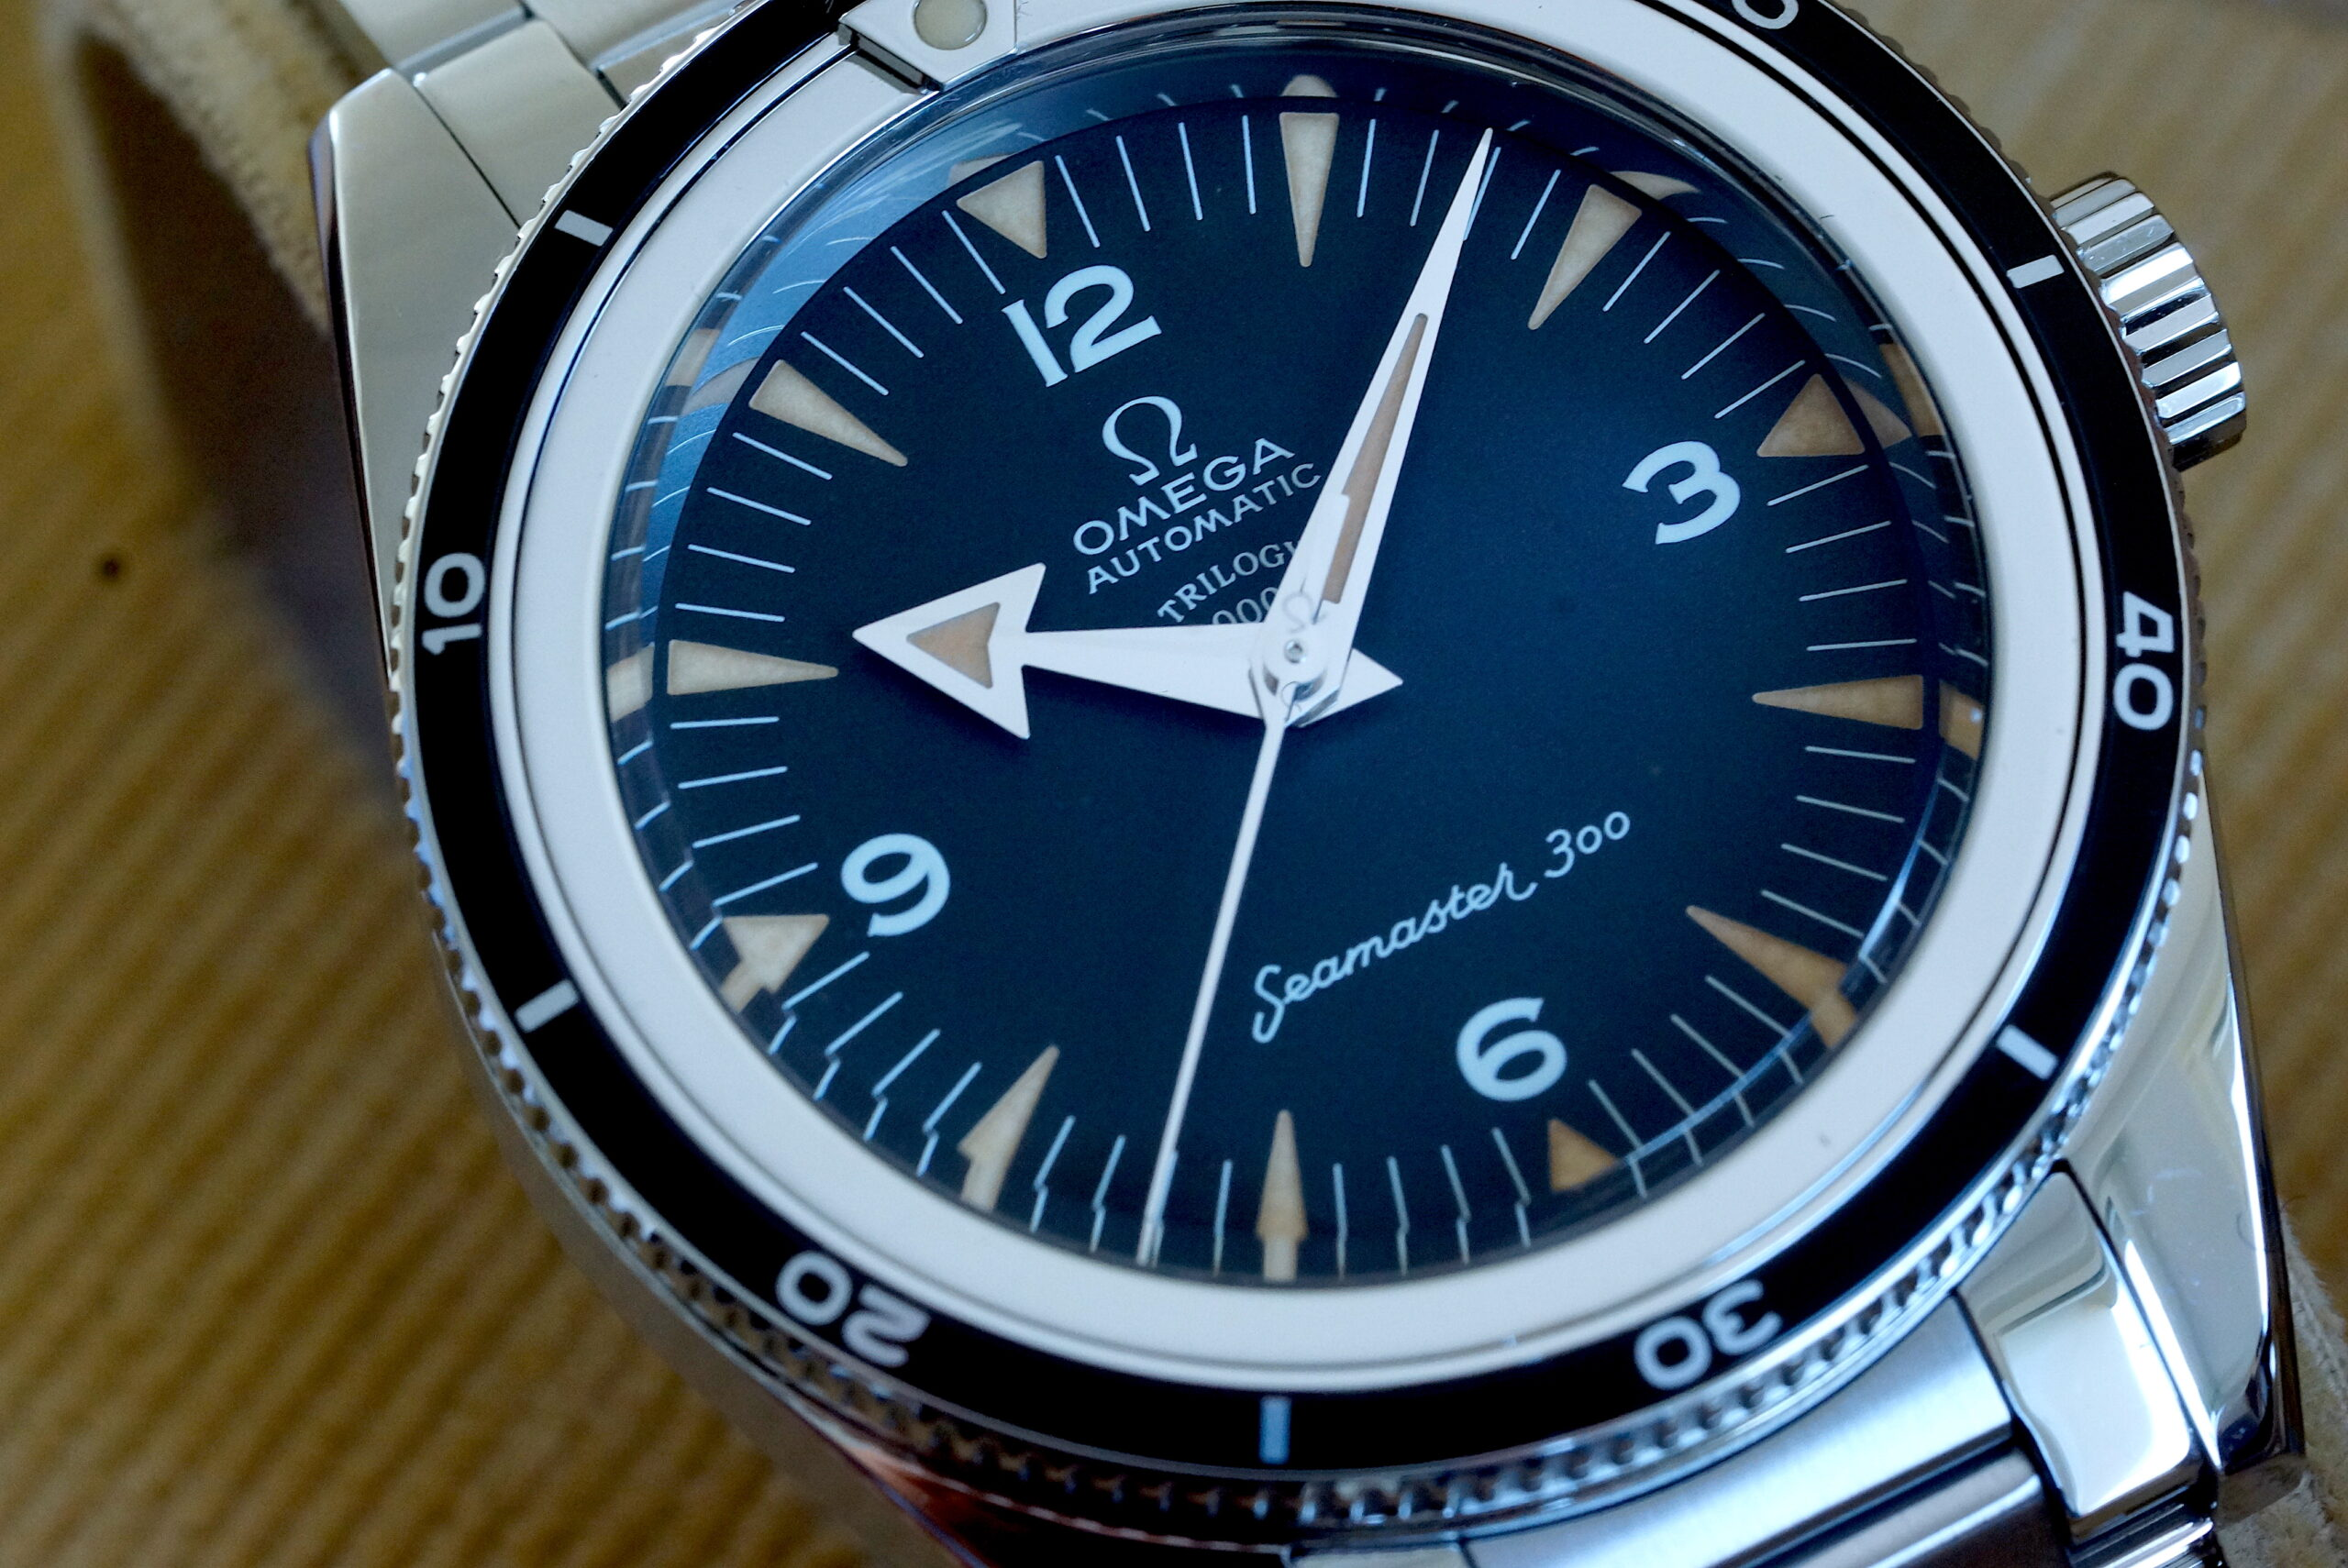 Omega 1957 Trilogy SEAMASTER 300 Master Co-Axial Chronometer from TRIO Set